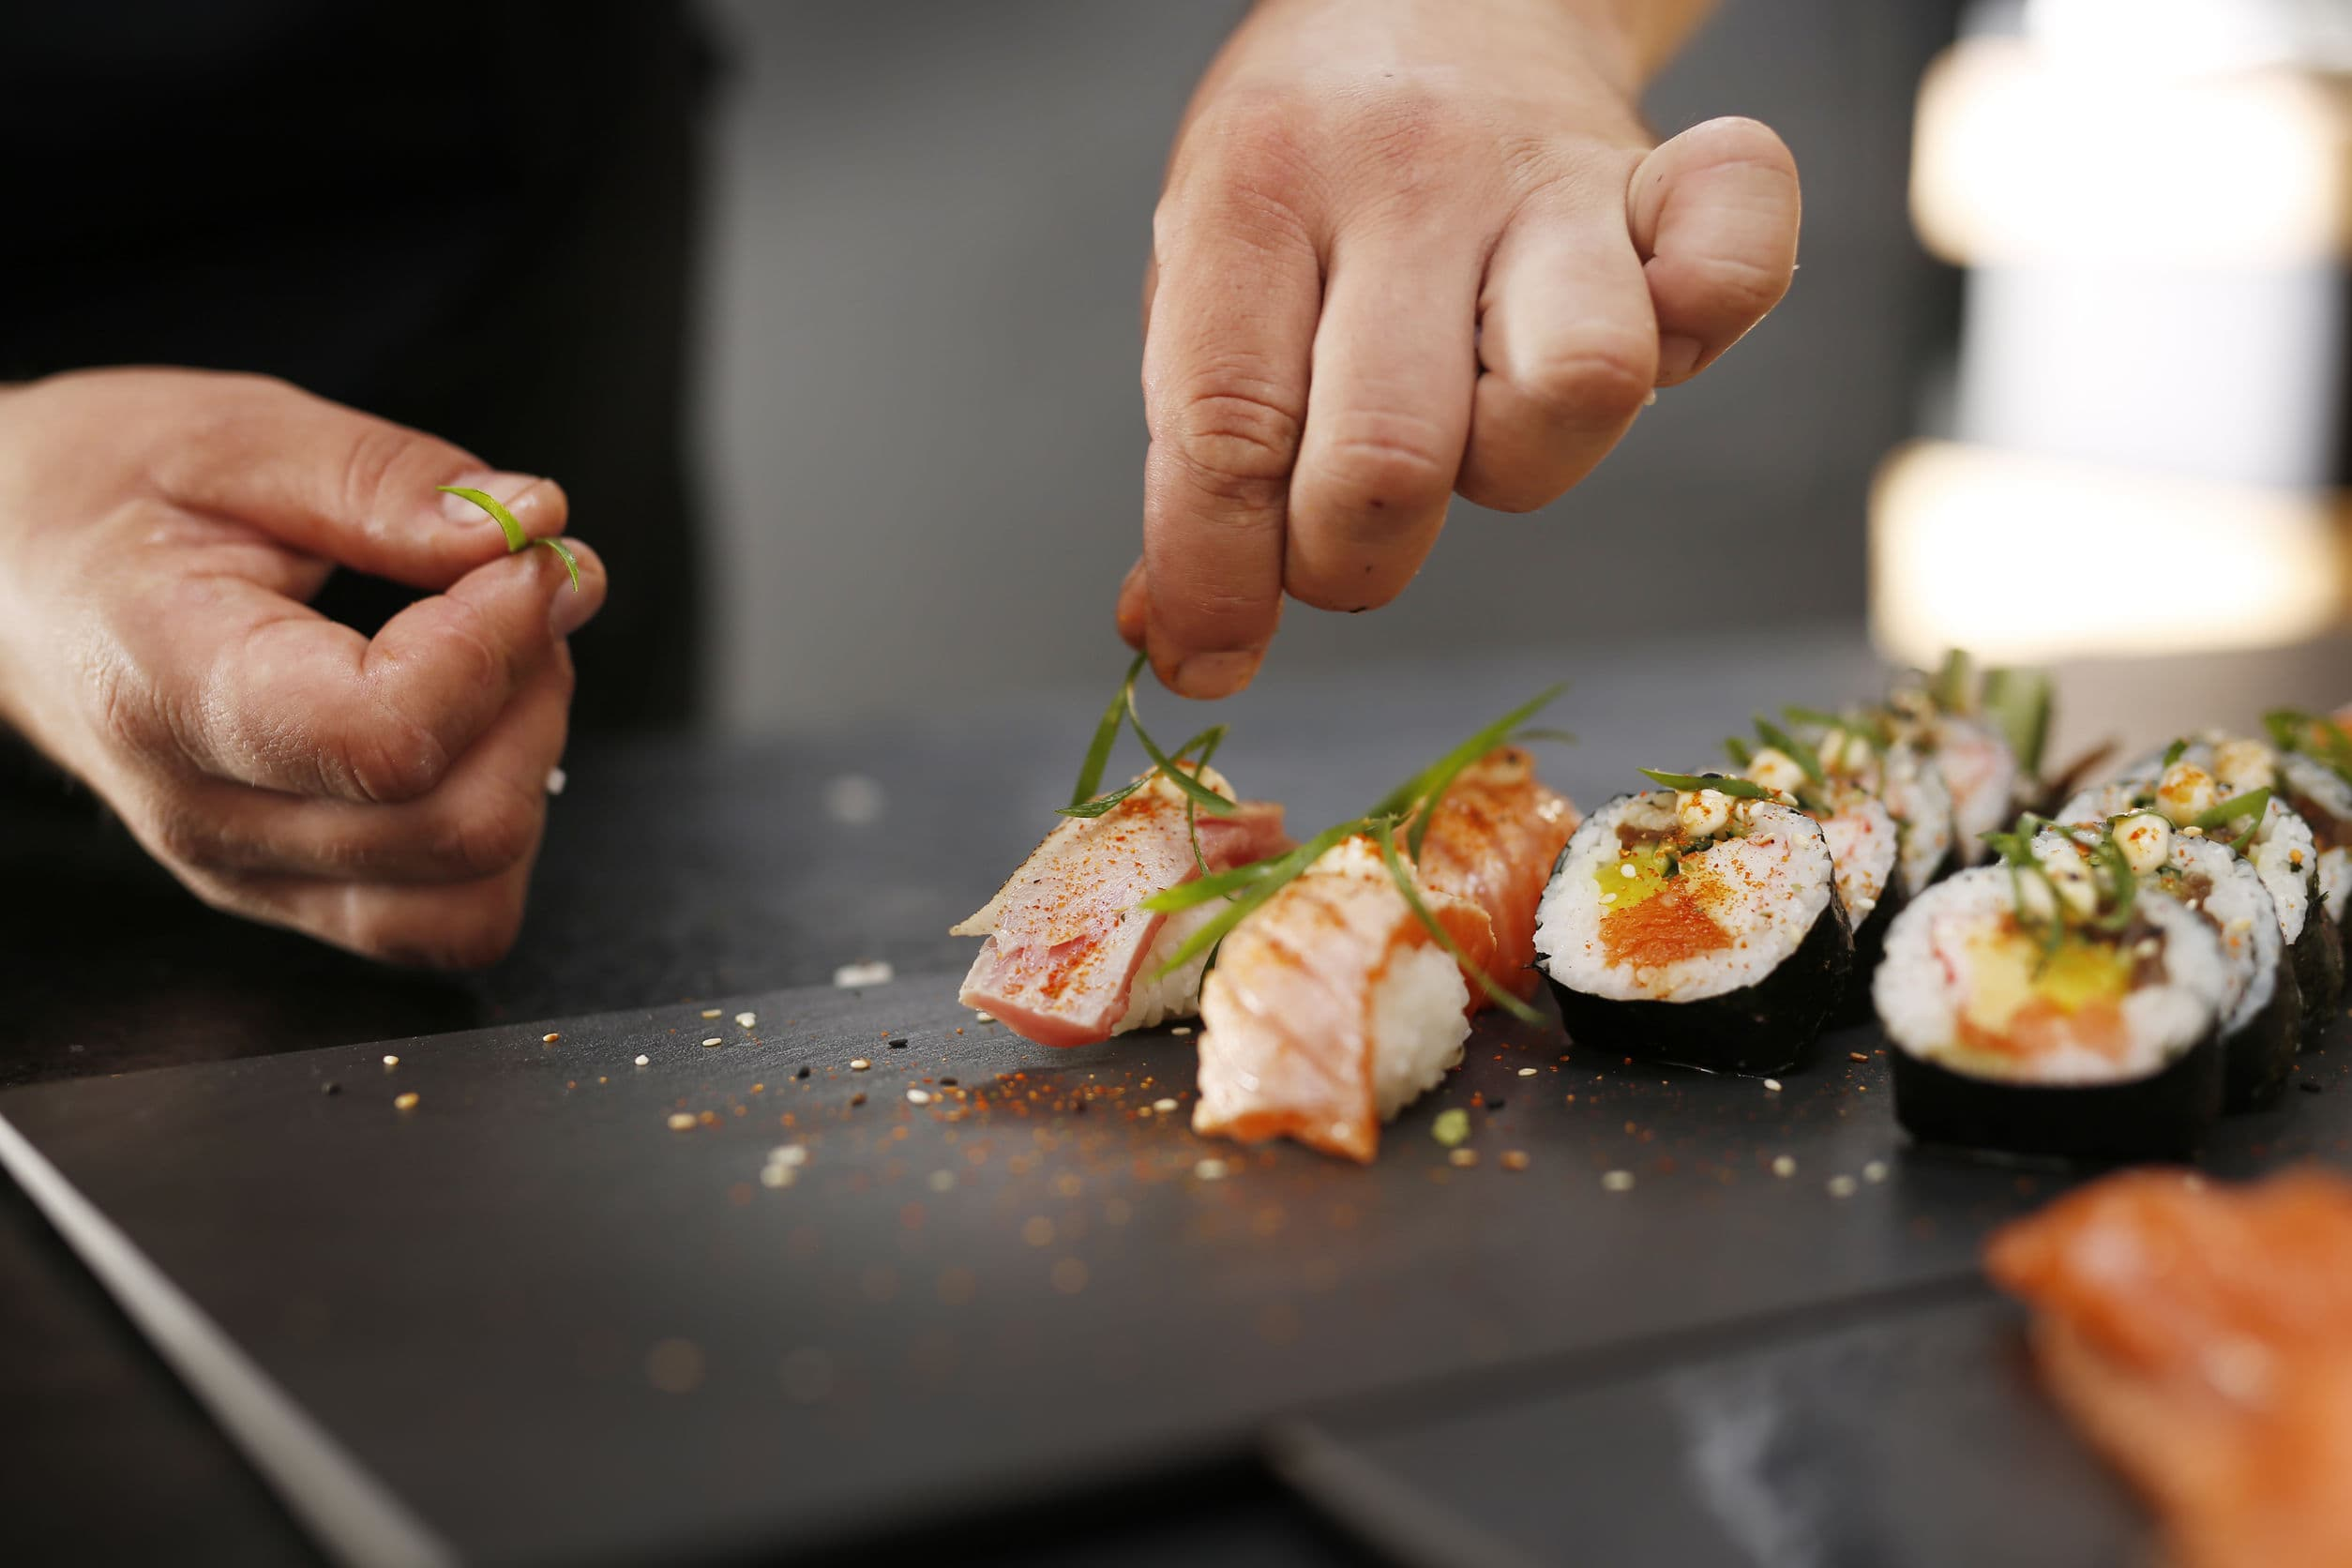 Sushi Restaurants Can Display New Menu Items